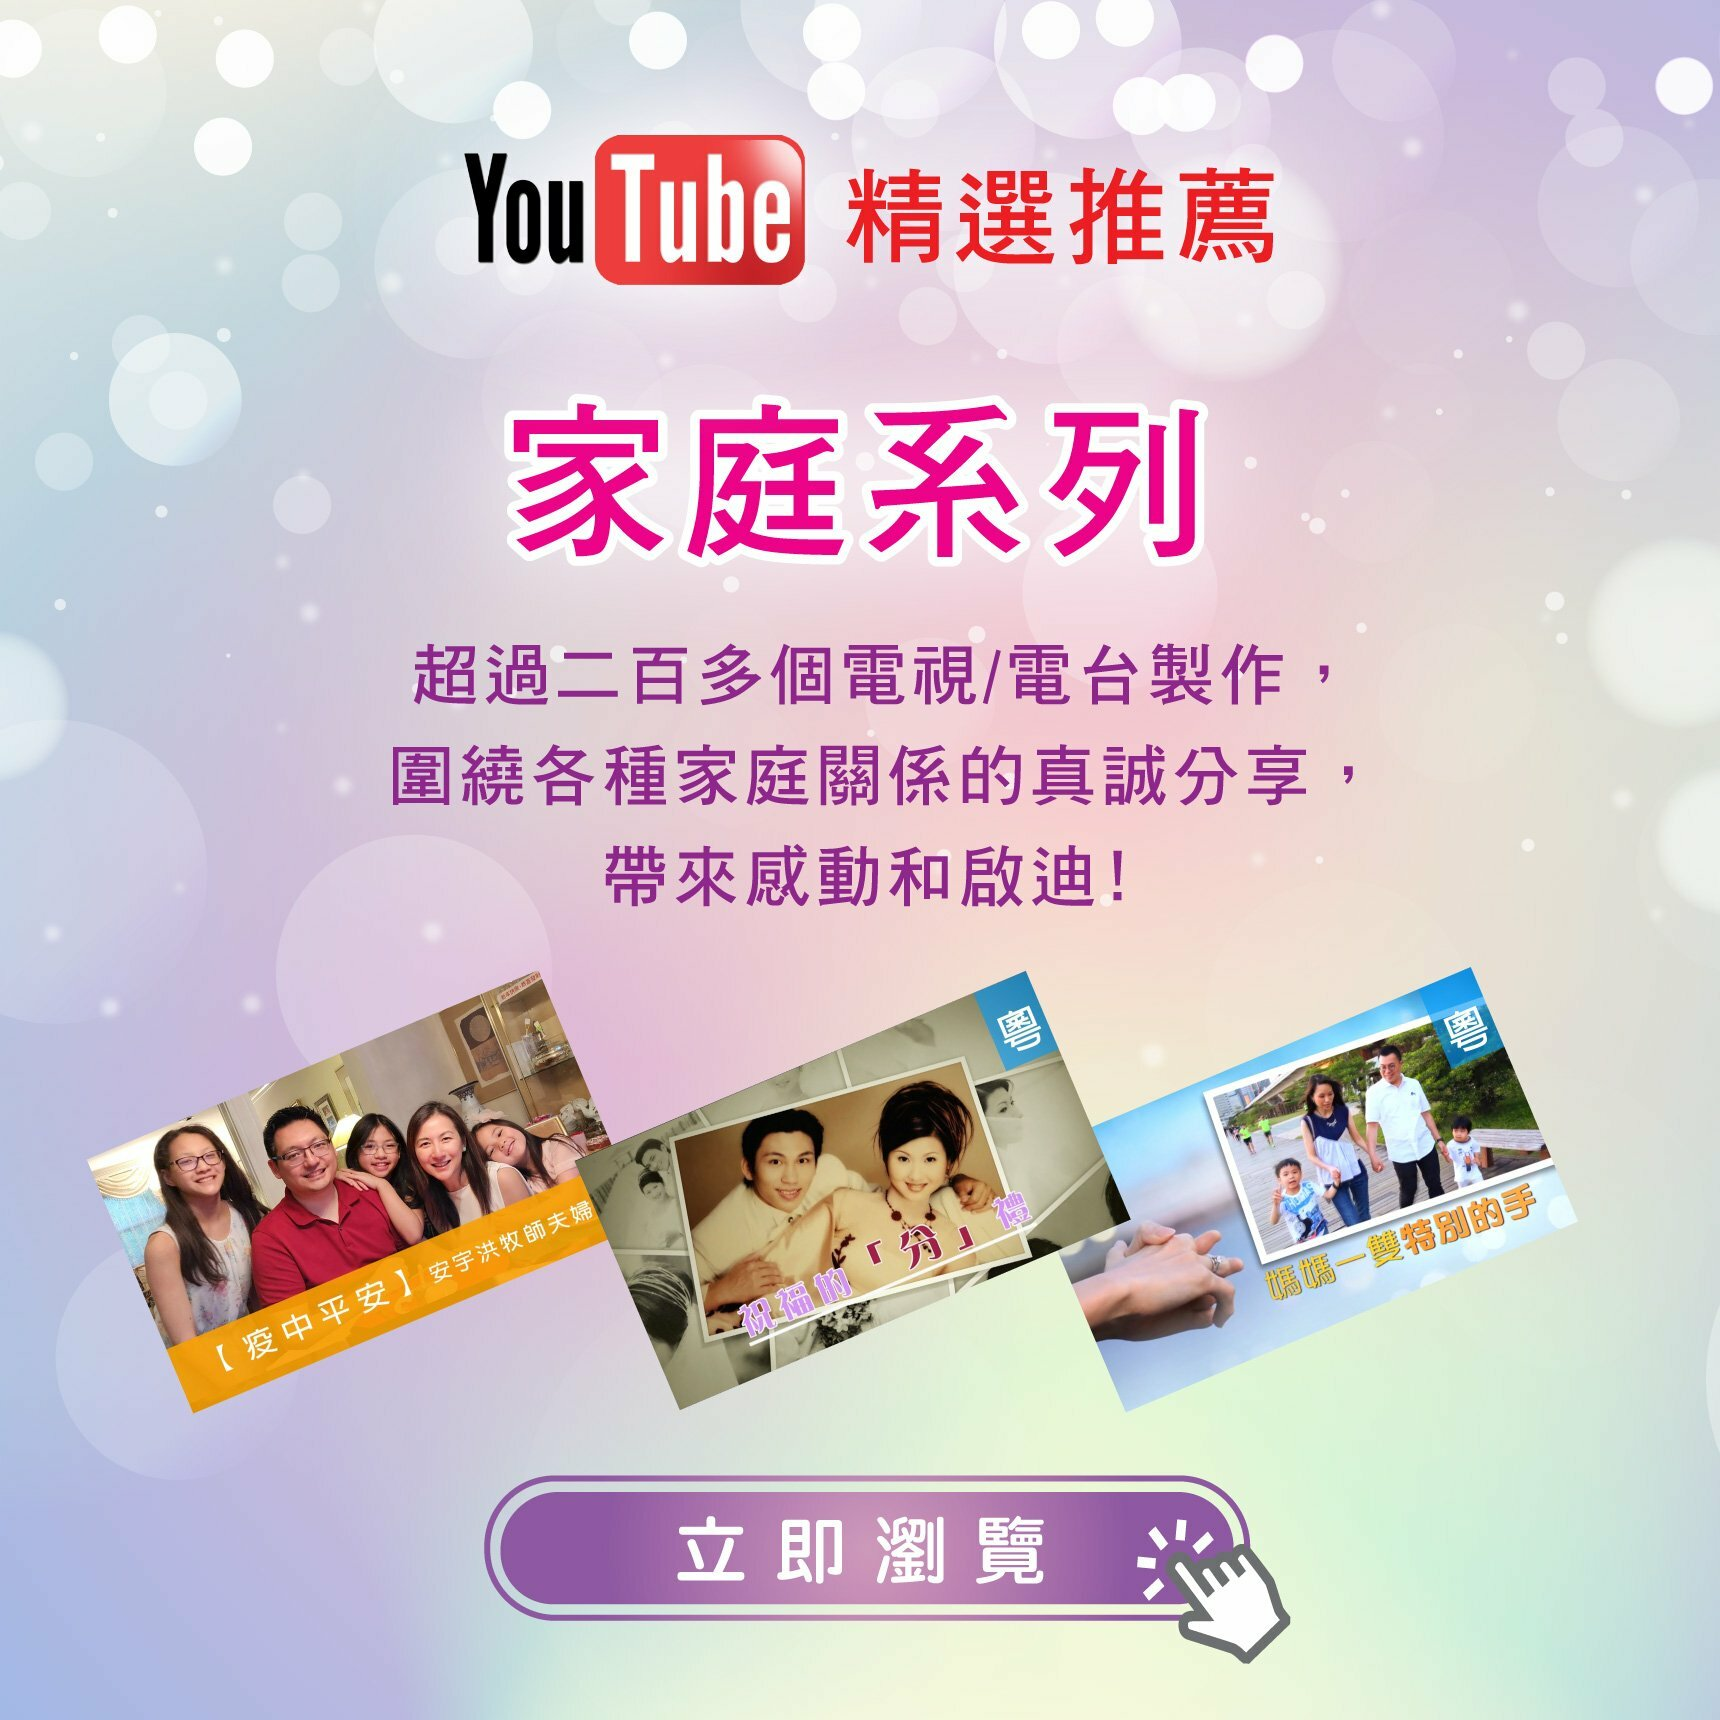 YouTube Feature Family Series